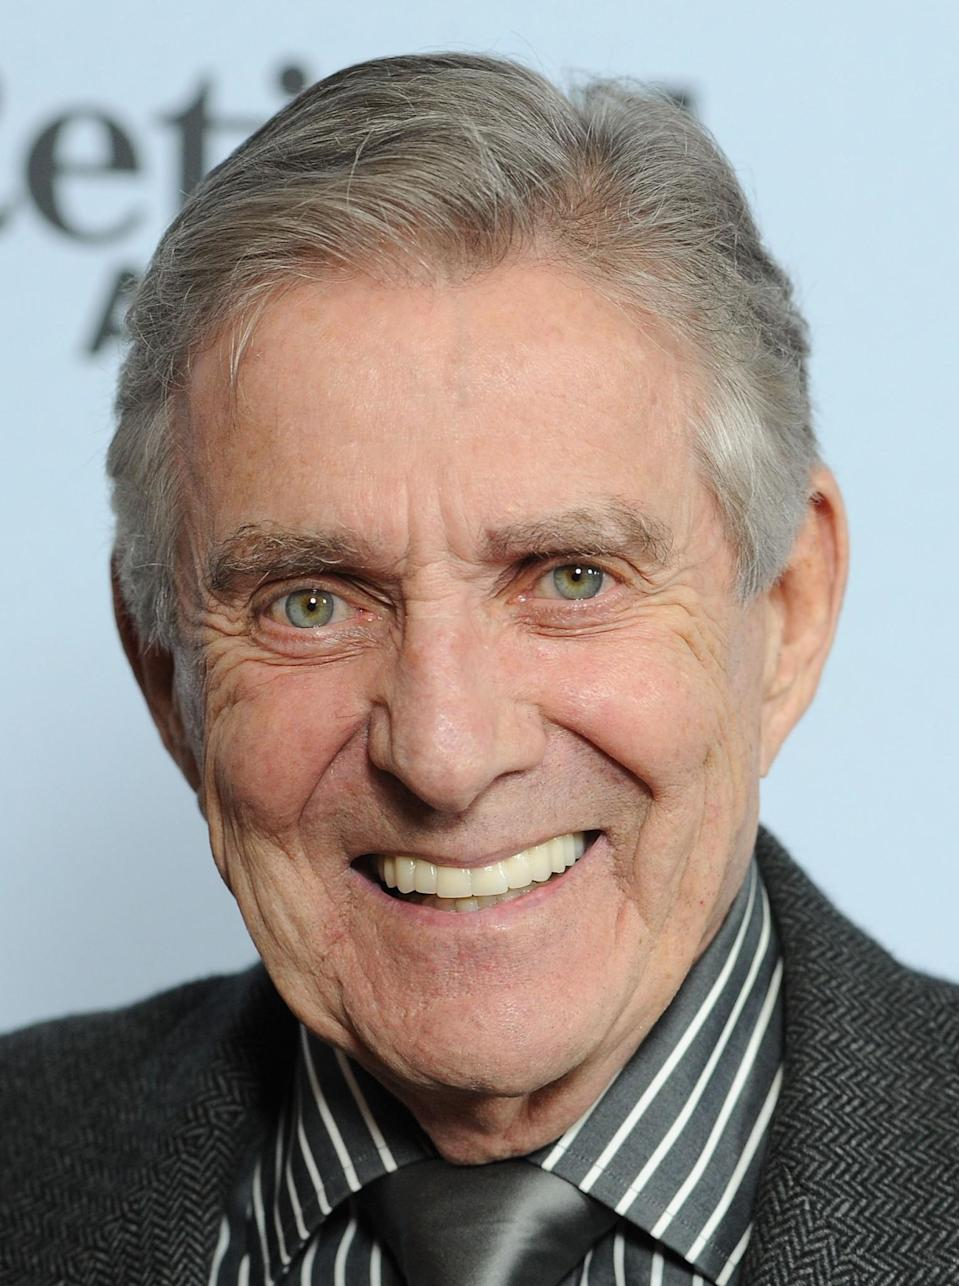 "<p>""One Day at a Time"" star Pat Harrington Jr. died on Jan. 6, 2016 at 86. Photo from Getty Images </p>"